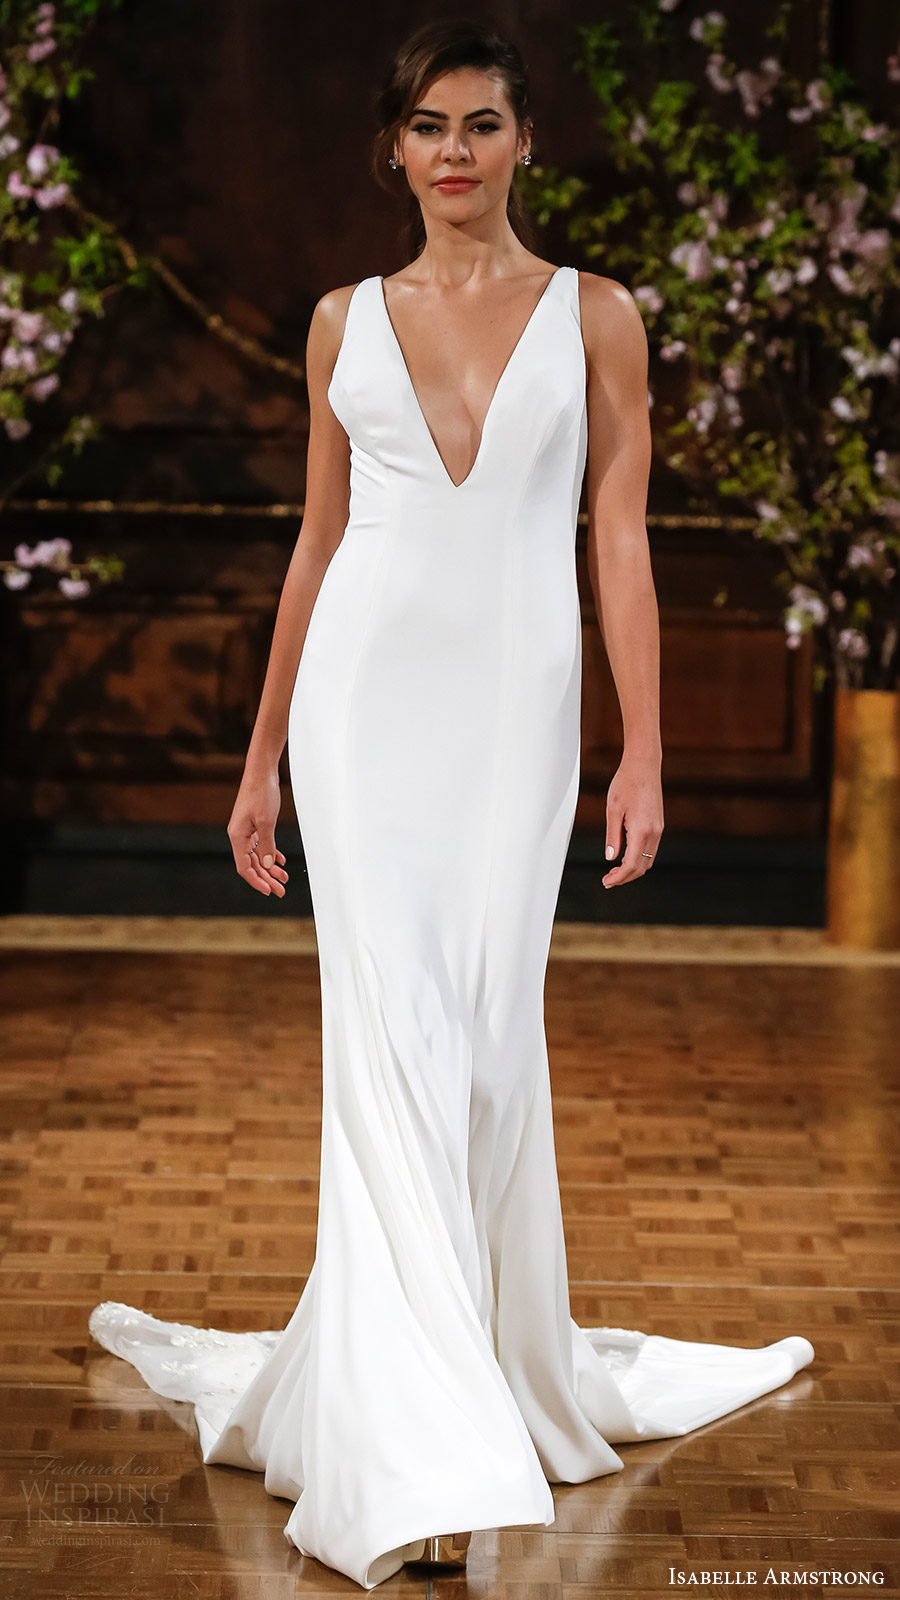 isabelle armstrong bridal spring 2017 sleeveless deep vneck sheath wedding dress (storm) mv